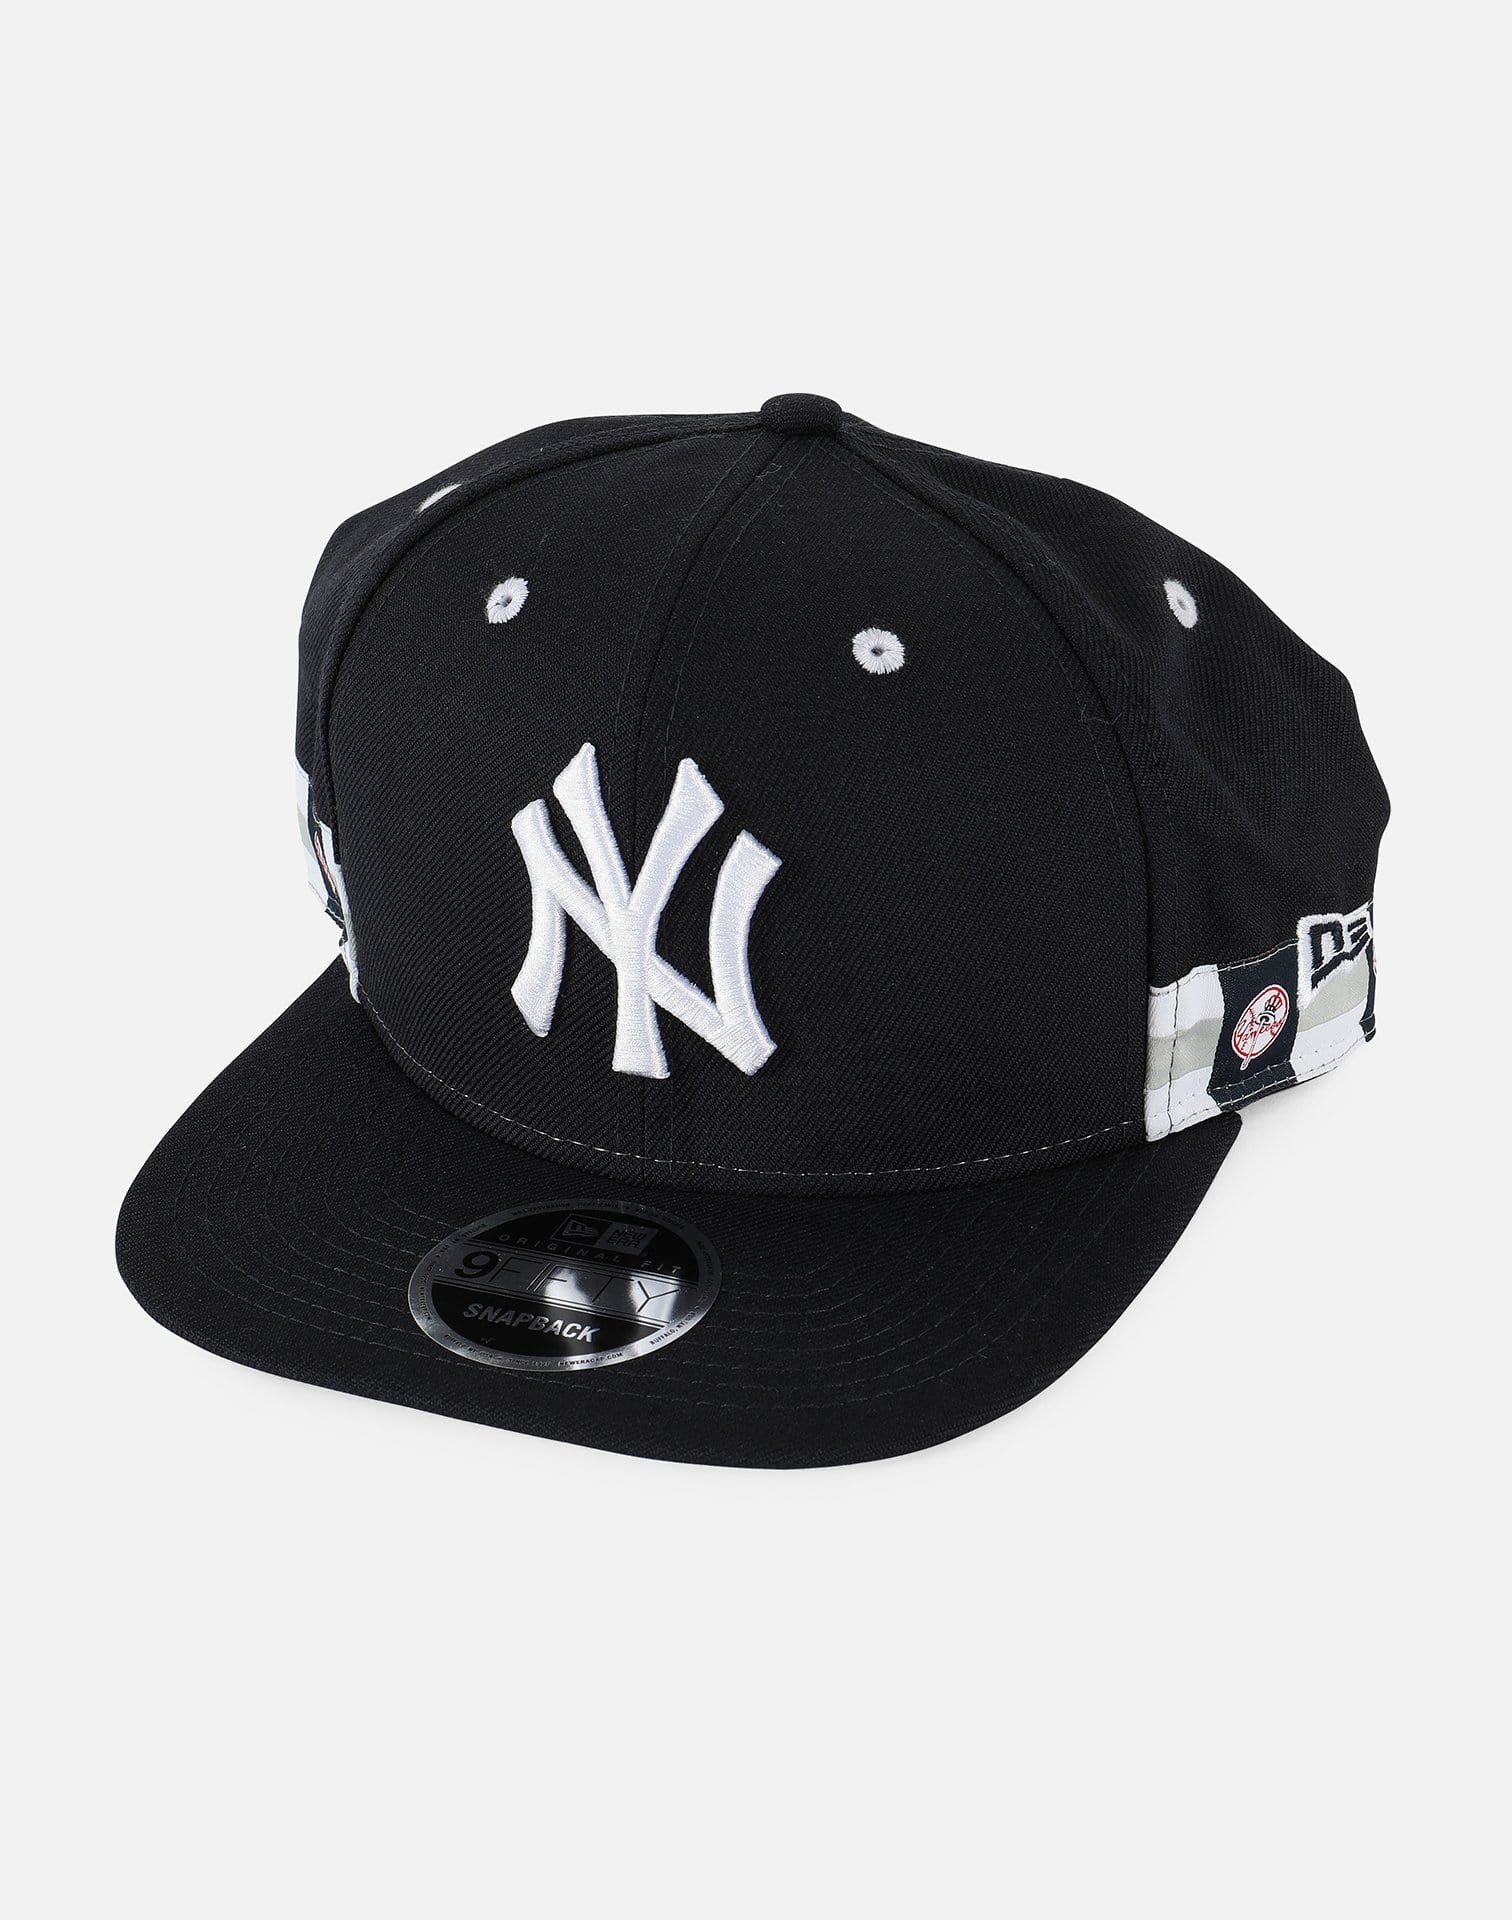 New Era Exclusive Customs MLB New York Yankees Snapback Hat